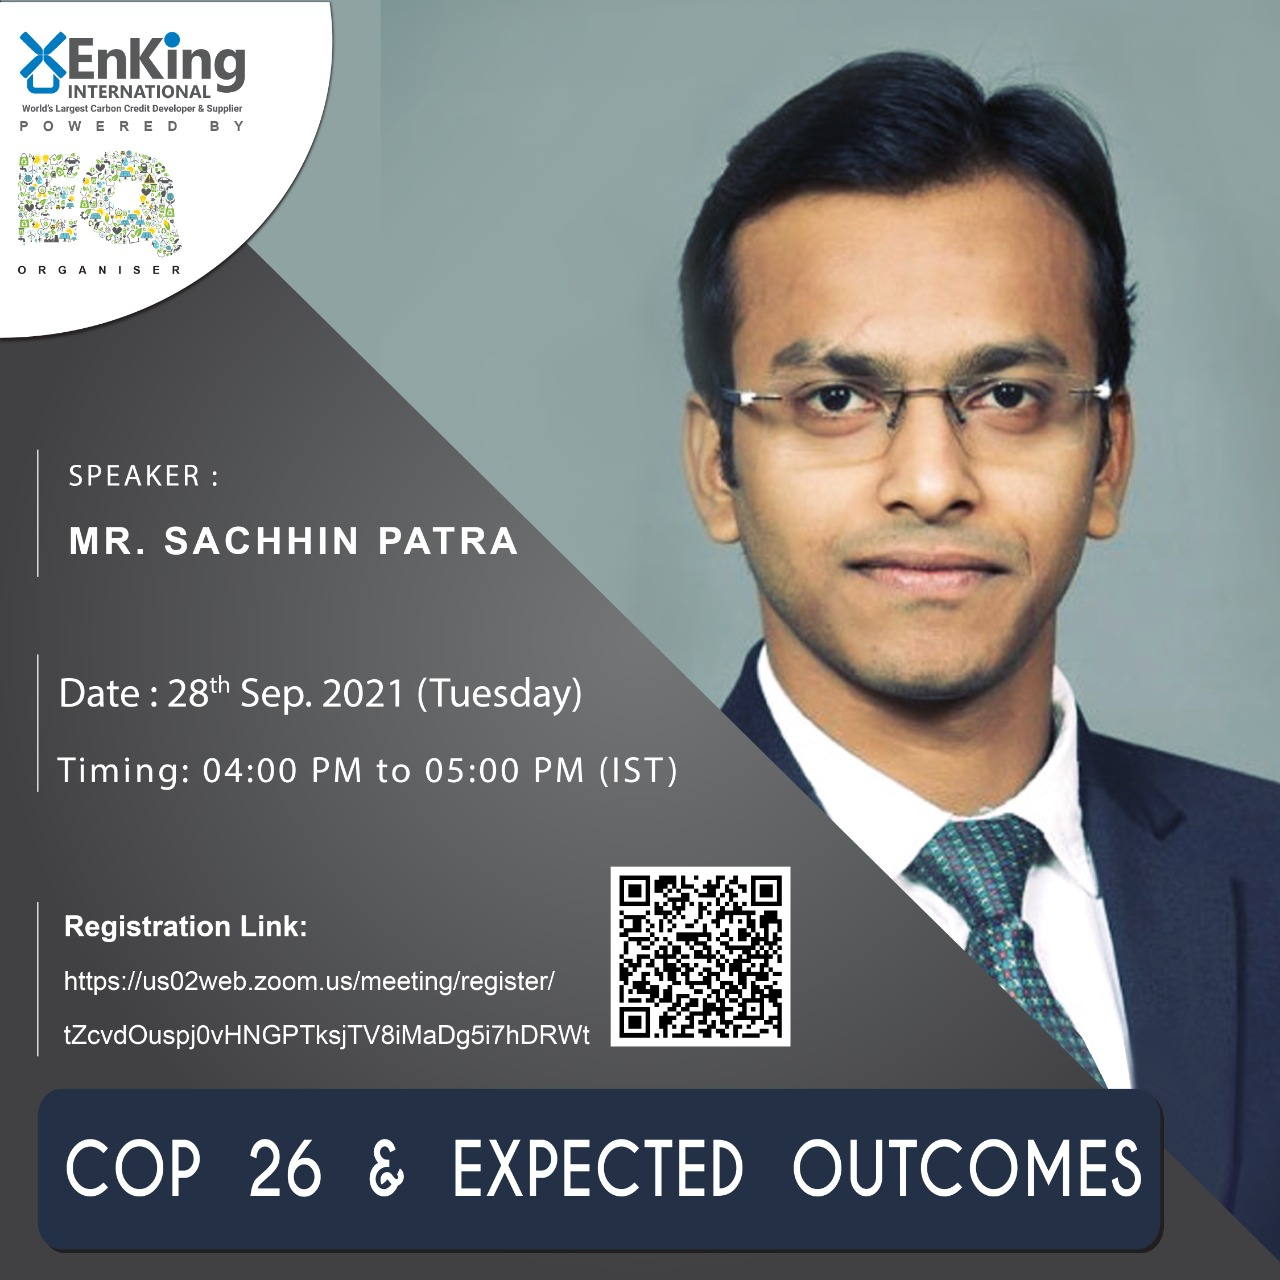 EQ Webinar on COP 26 and Expected Outcomes Powered by EnKing International On Tuesday September 28th From 4:00 PM Onwards…. Register Now !!!